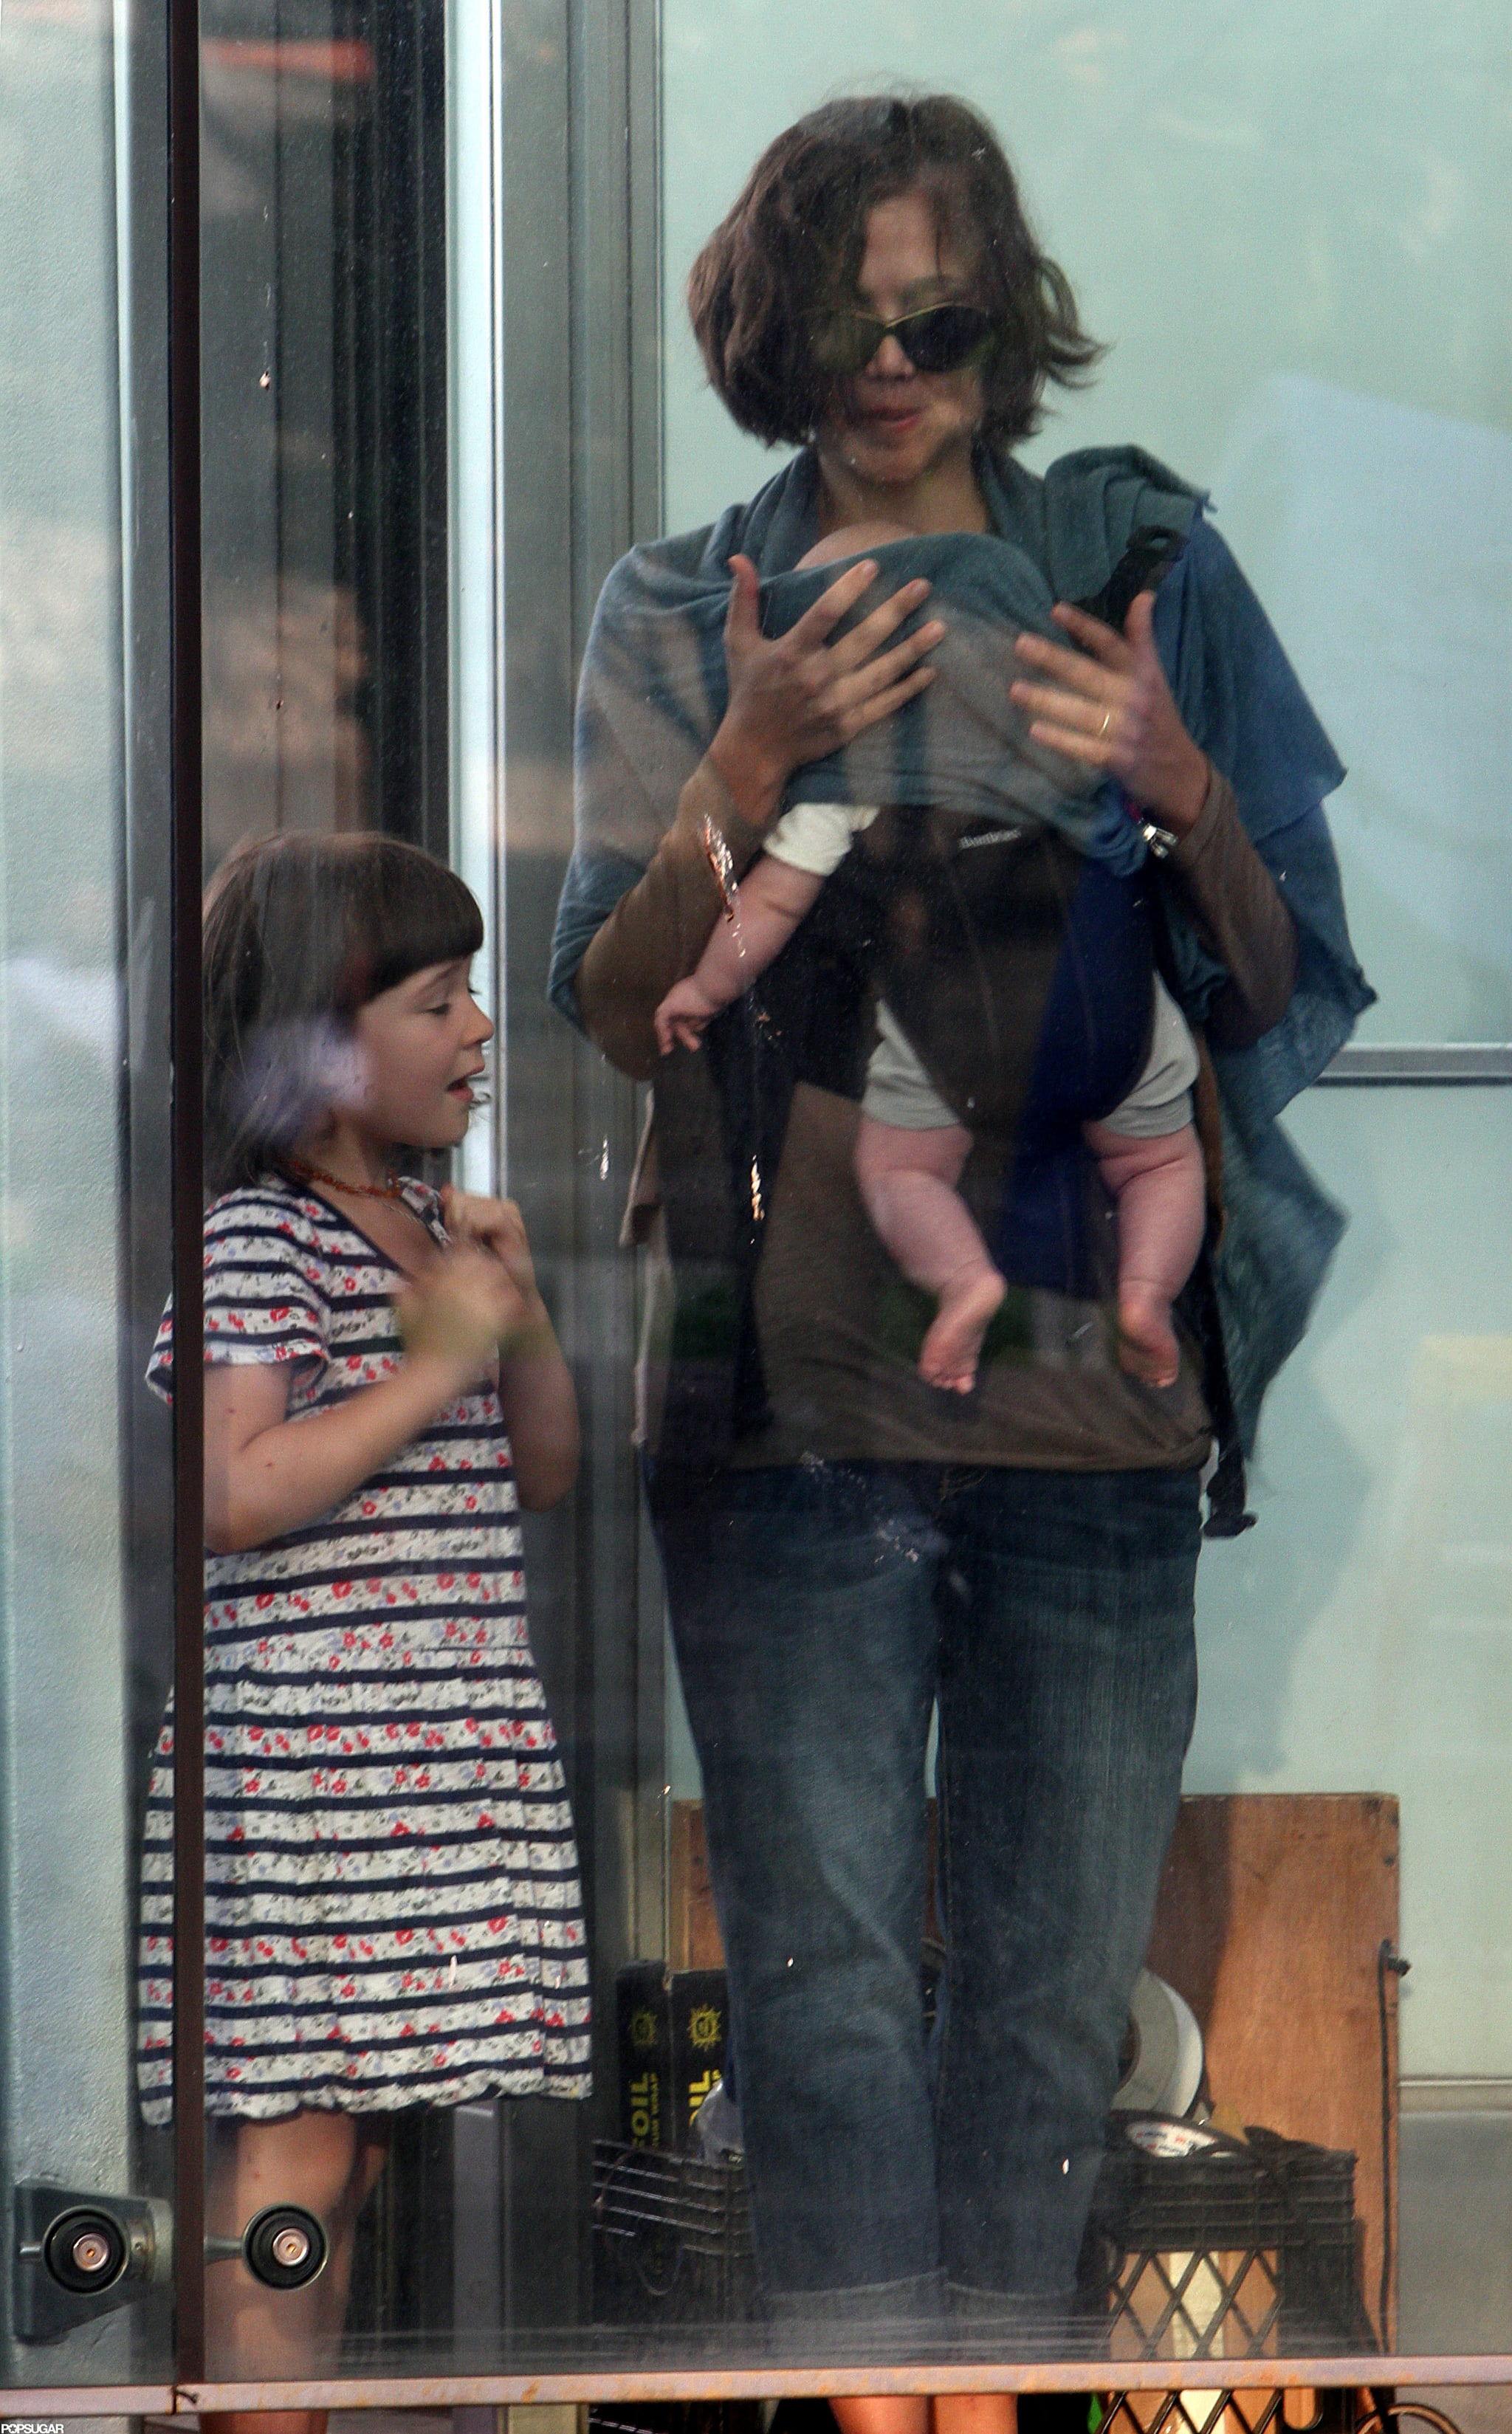 Maggie Gyllenhaal brought Ramona and Gloria to visit their dad, Peter Sarsgaard, on set in NYC.